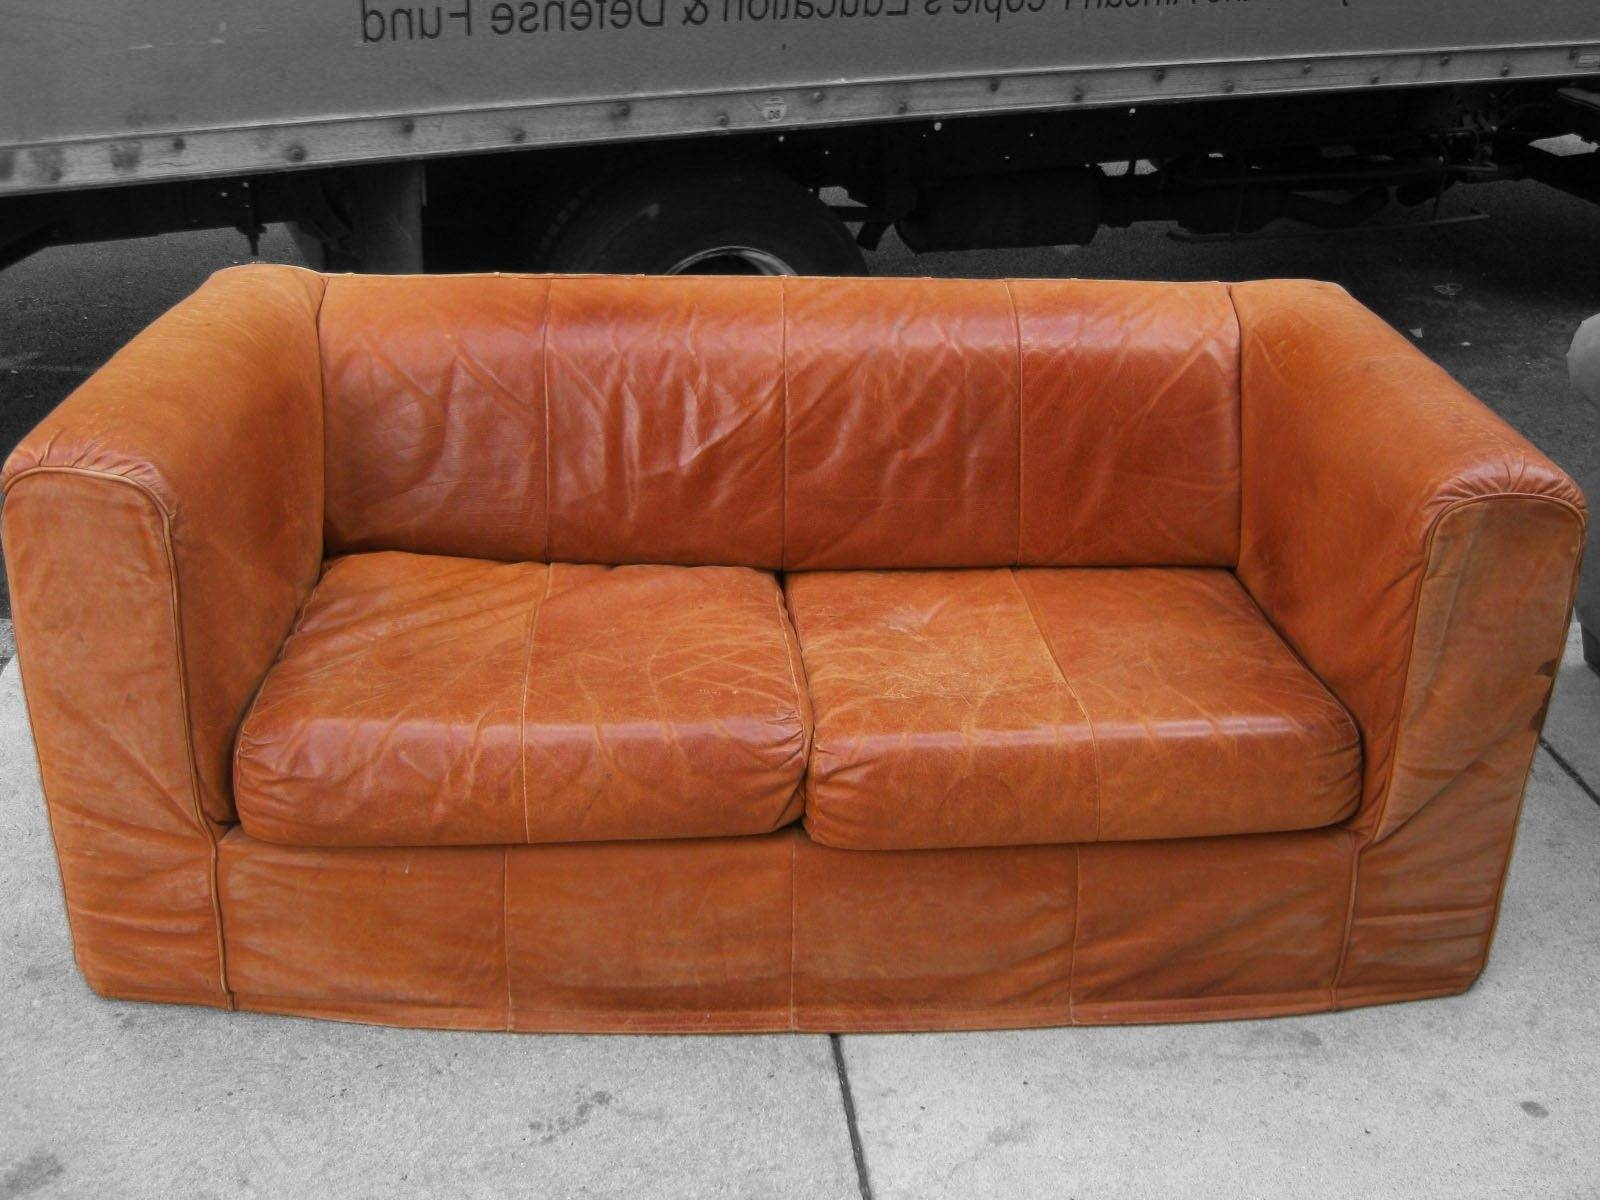 Camel Color Leather Sofa 70 With Camel Color Leather Sofa Pertaining To Camel Colored Leather Sofas (View 4 of 15)